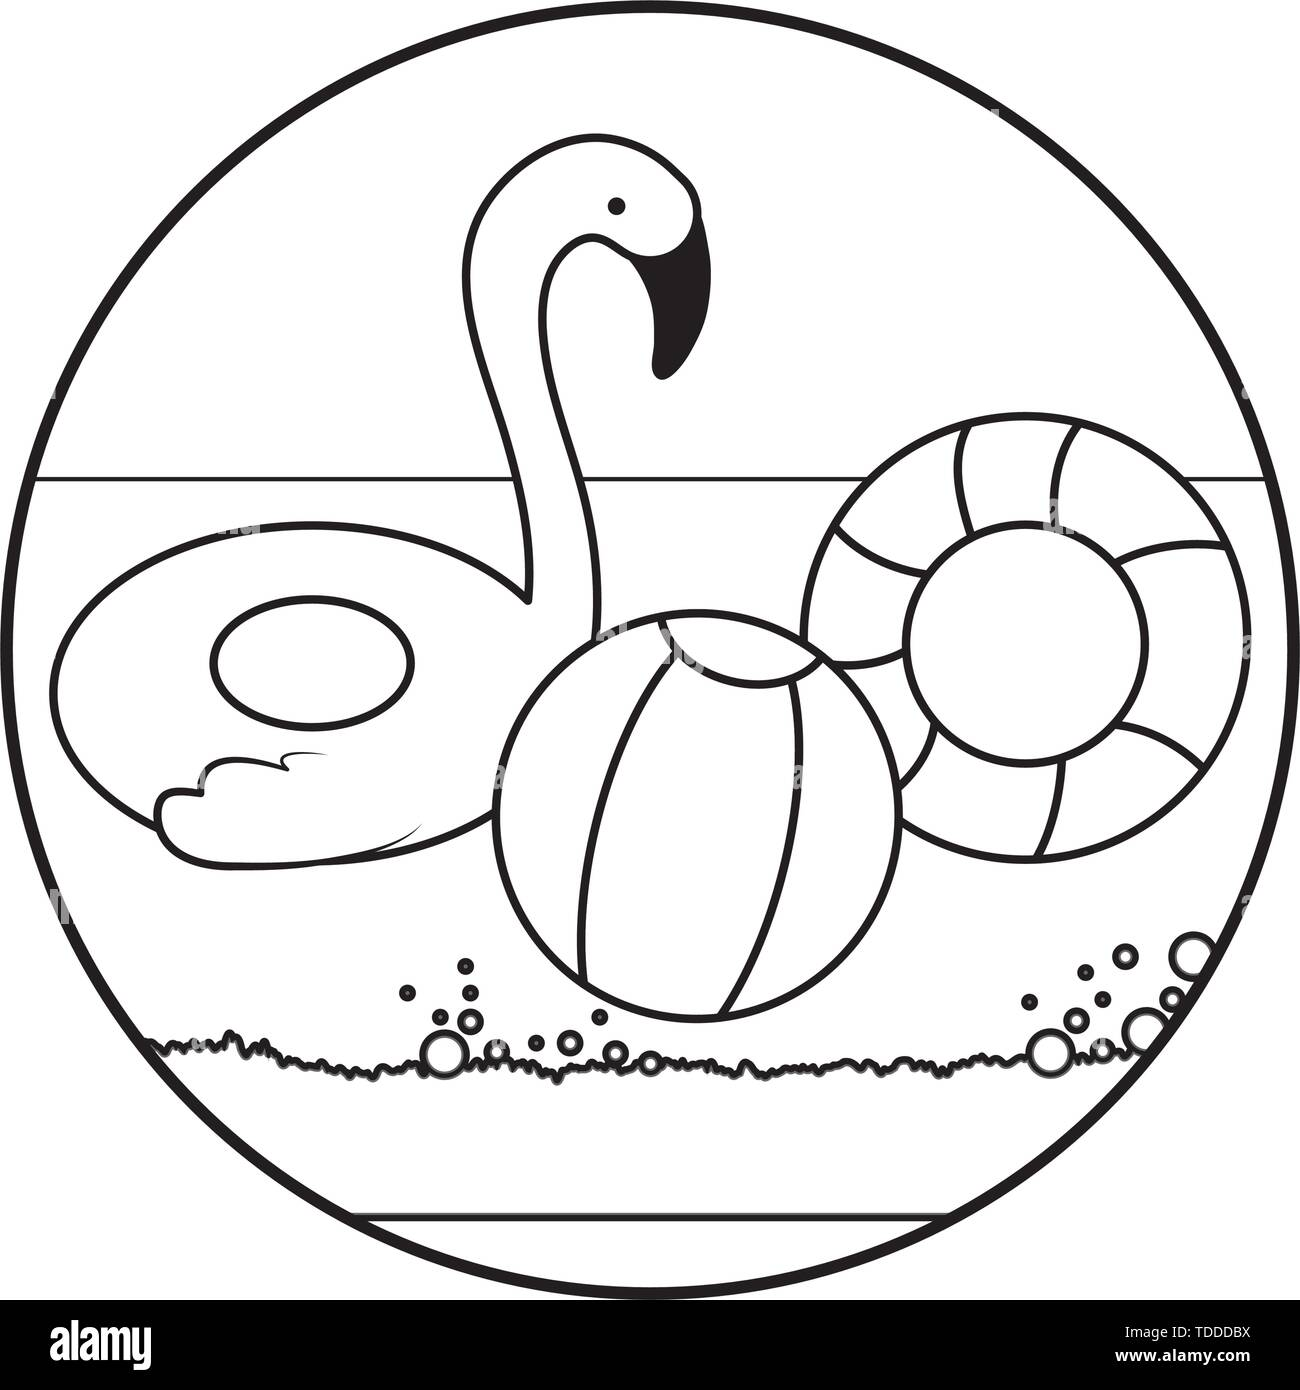 floats protections summer with ball of beach in beach vector illustration design - Stock Image